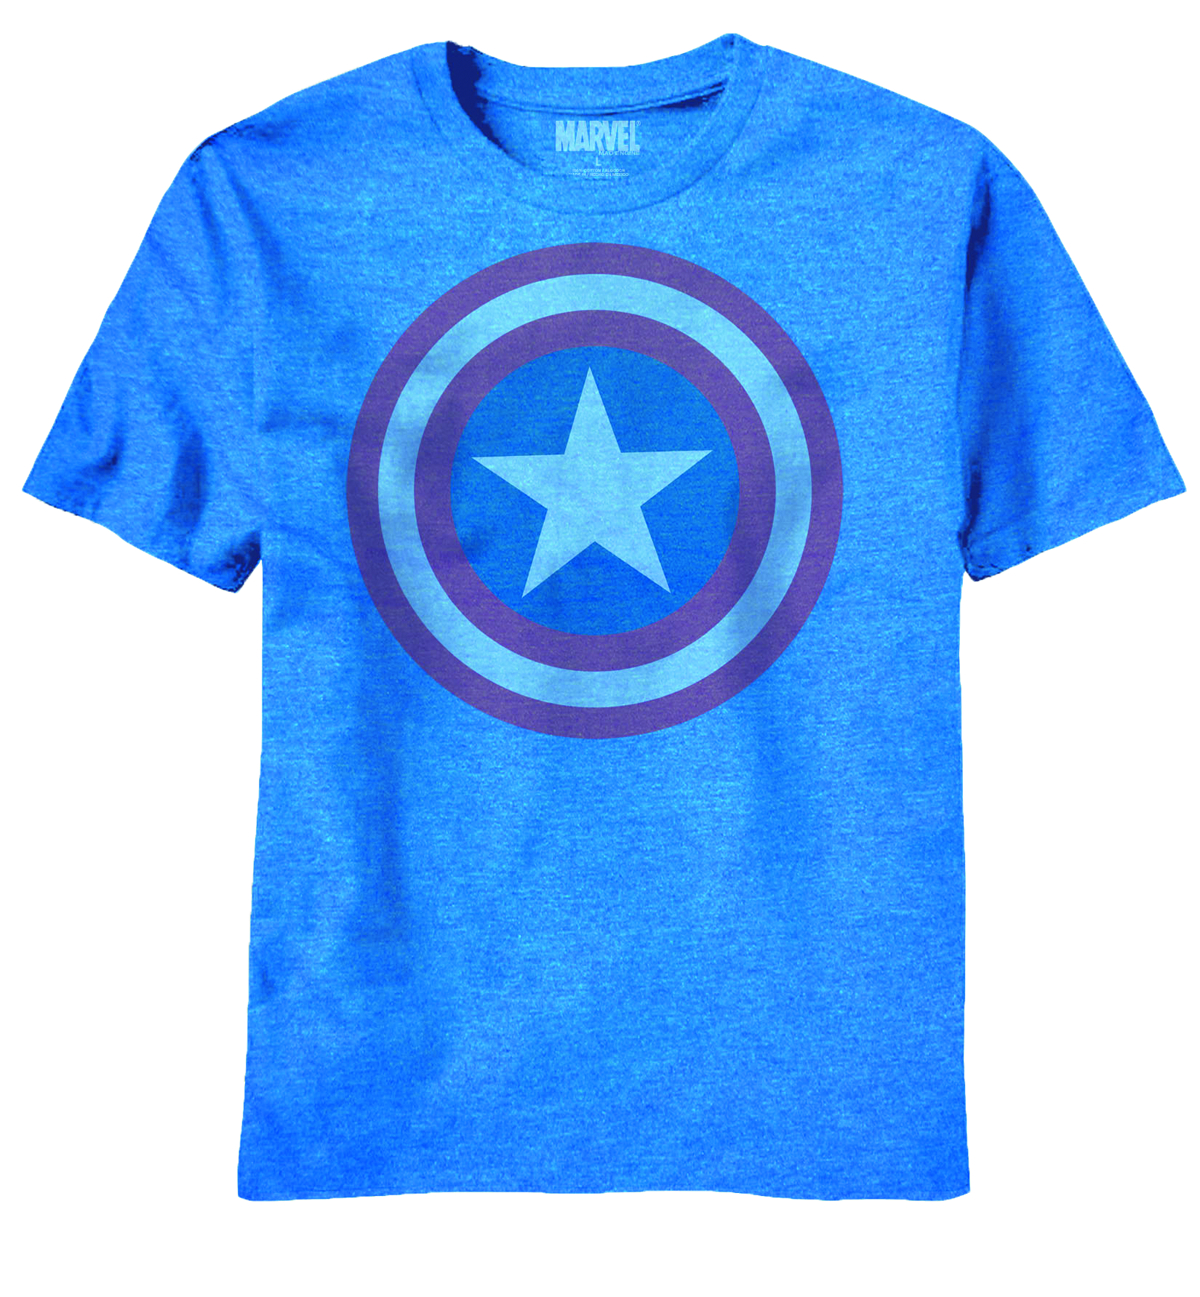 CAPTAIN AMERICA DIM SHIELD BLUE HEATHER T/S LG